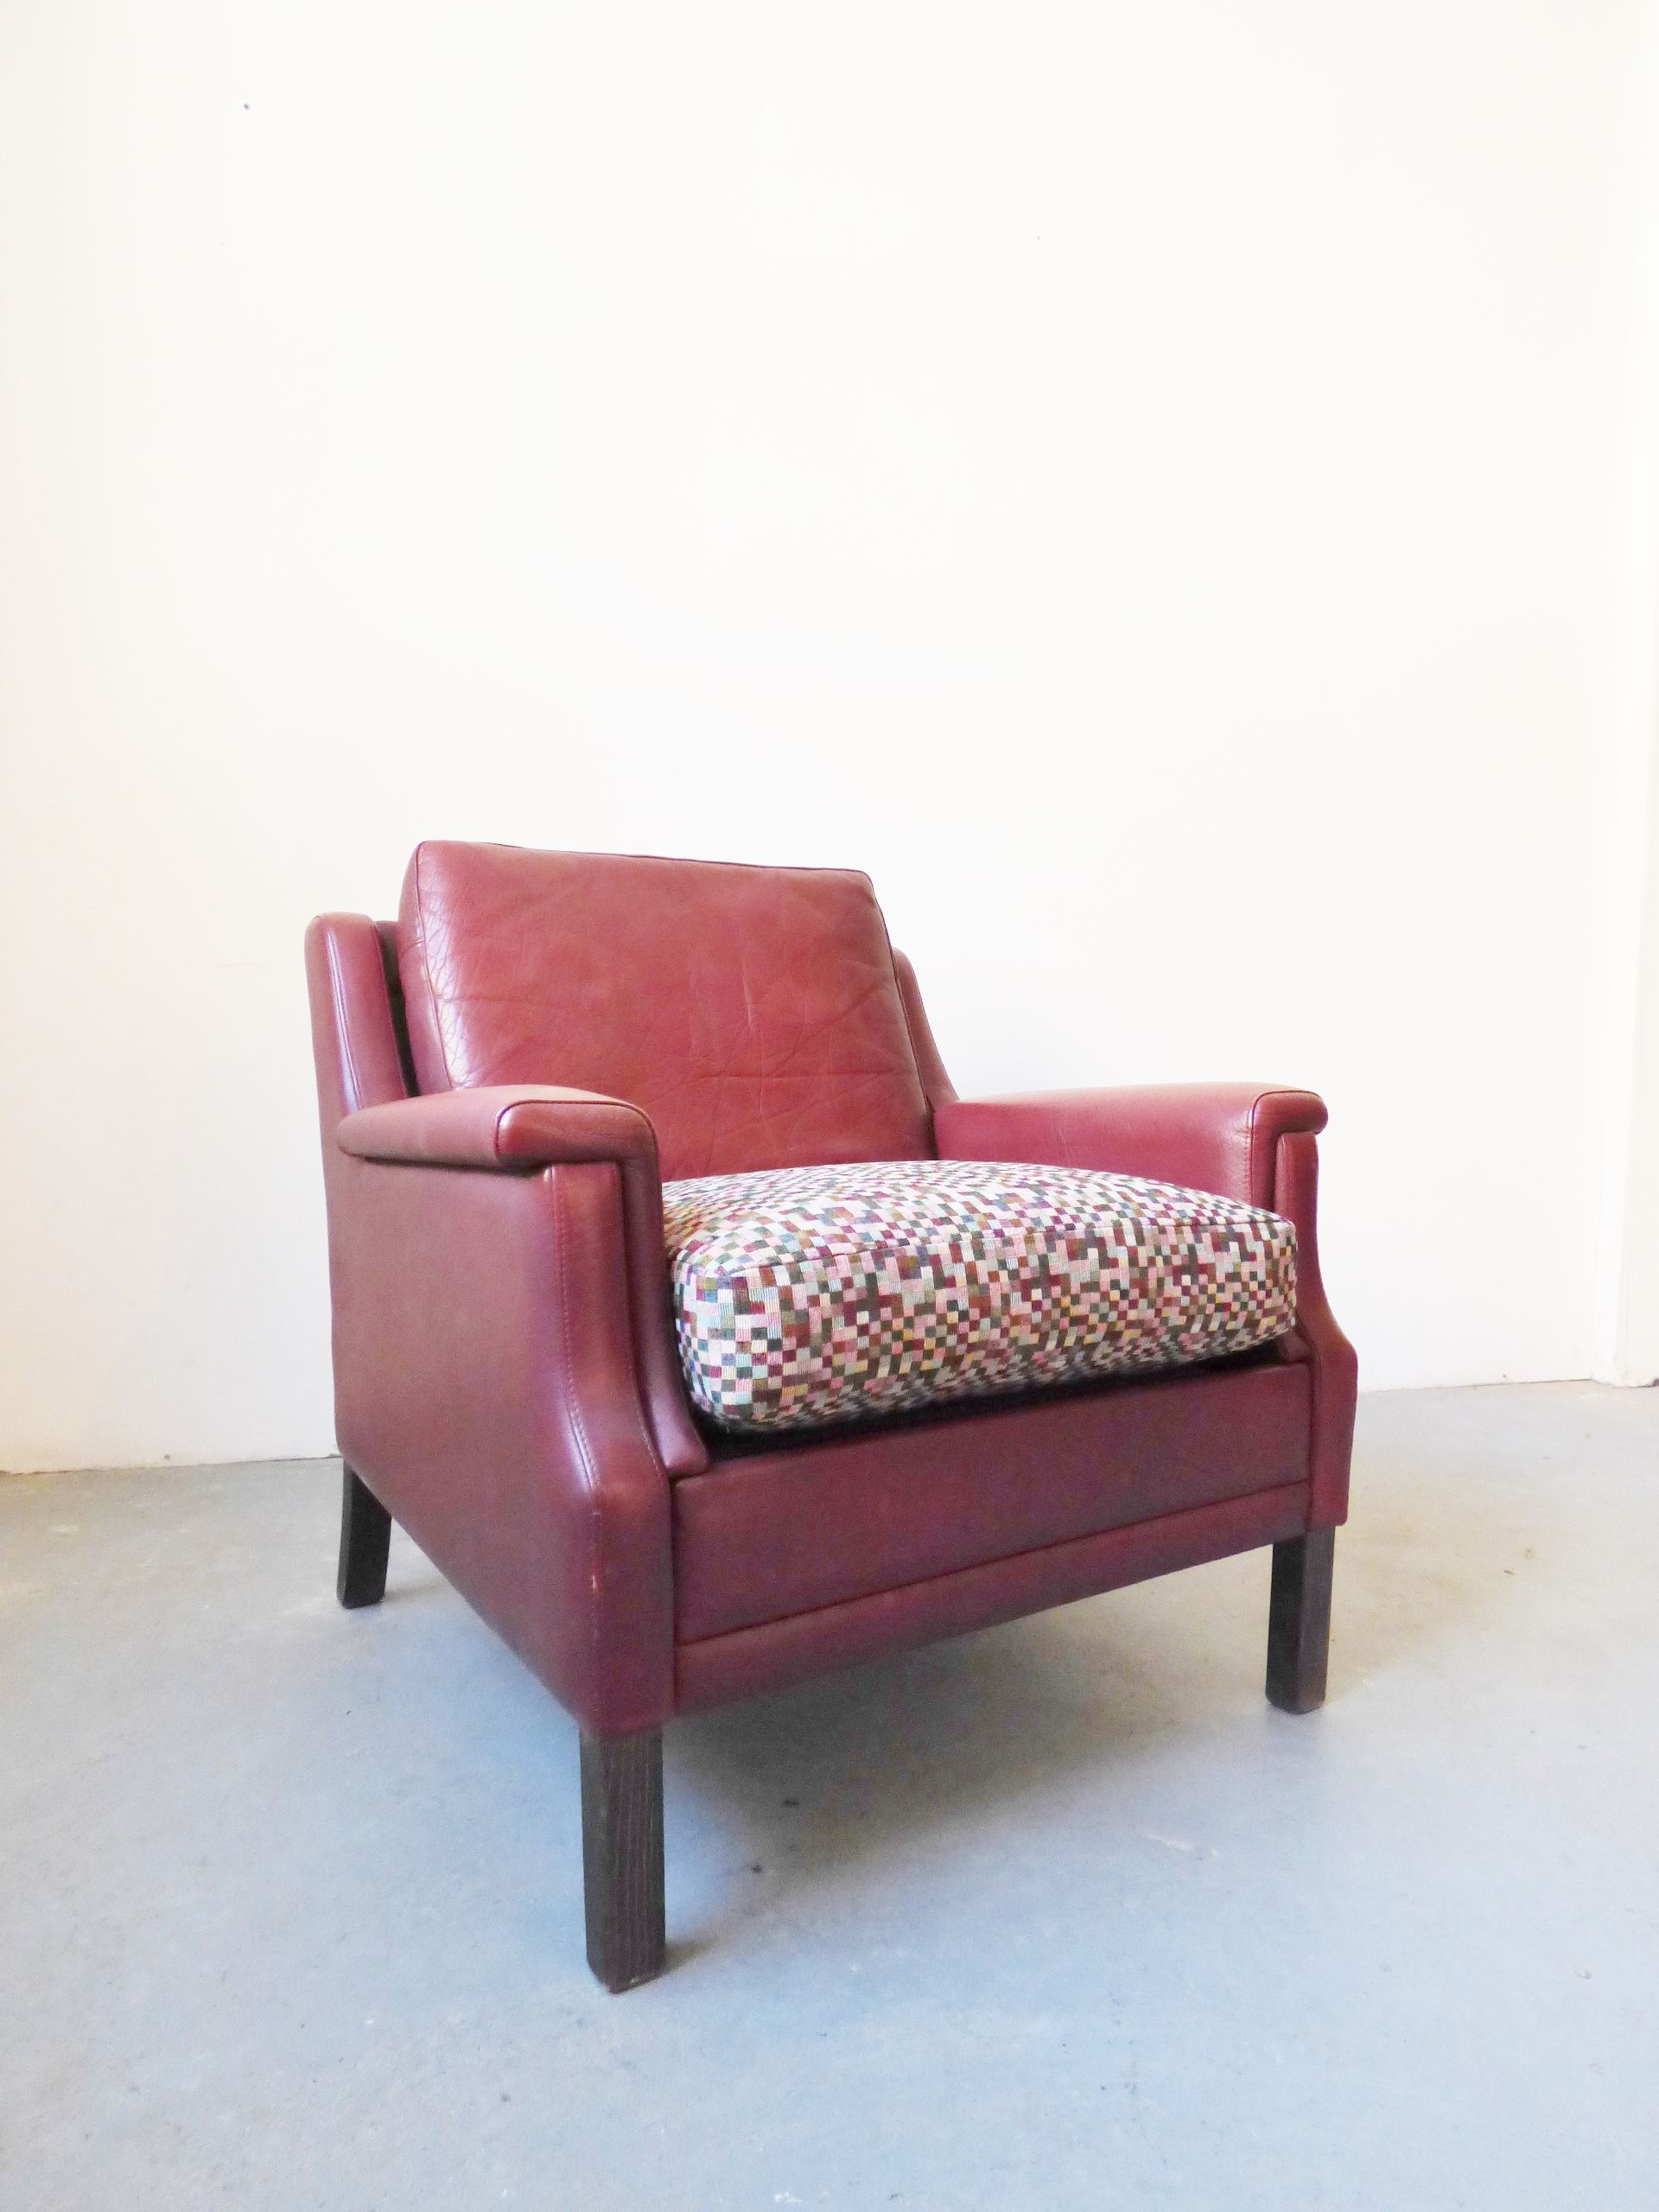 Vintage Danish Red Leather Armchair